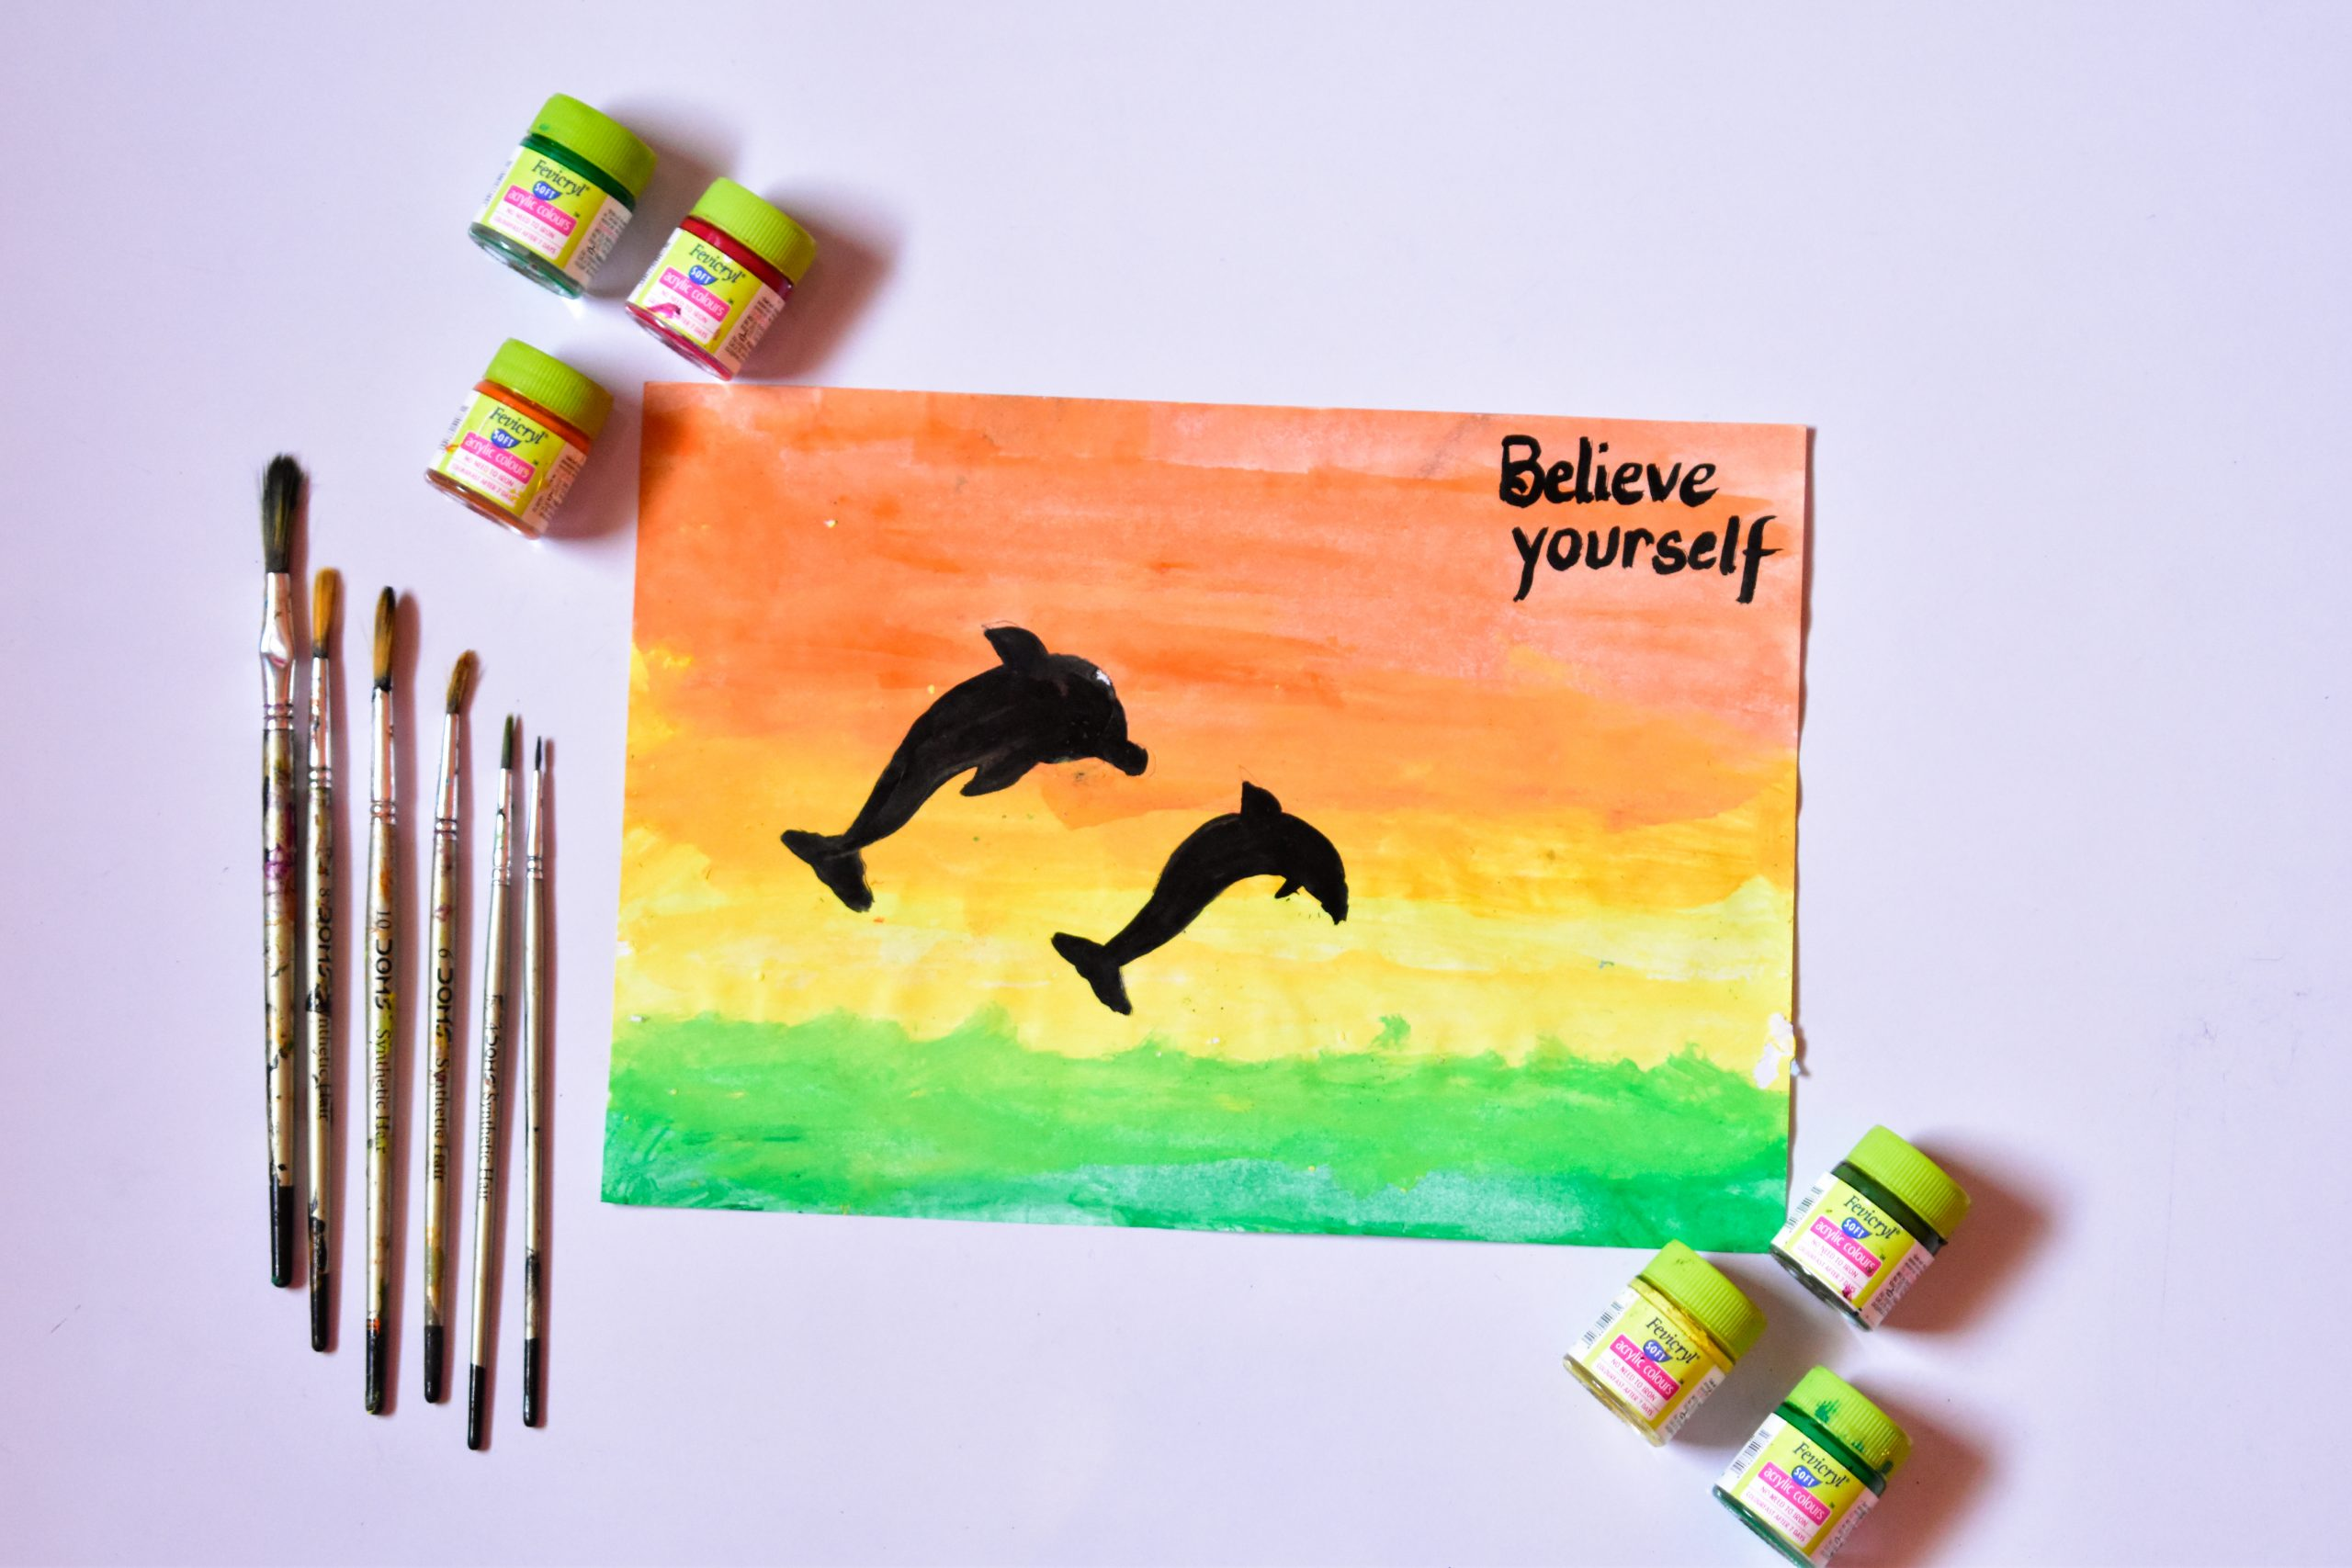 dolphin painting, paint brushes and paints